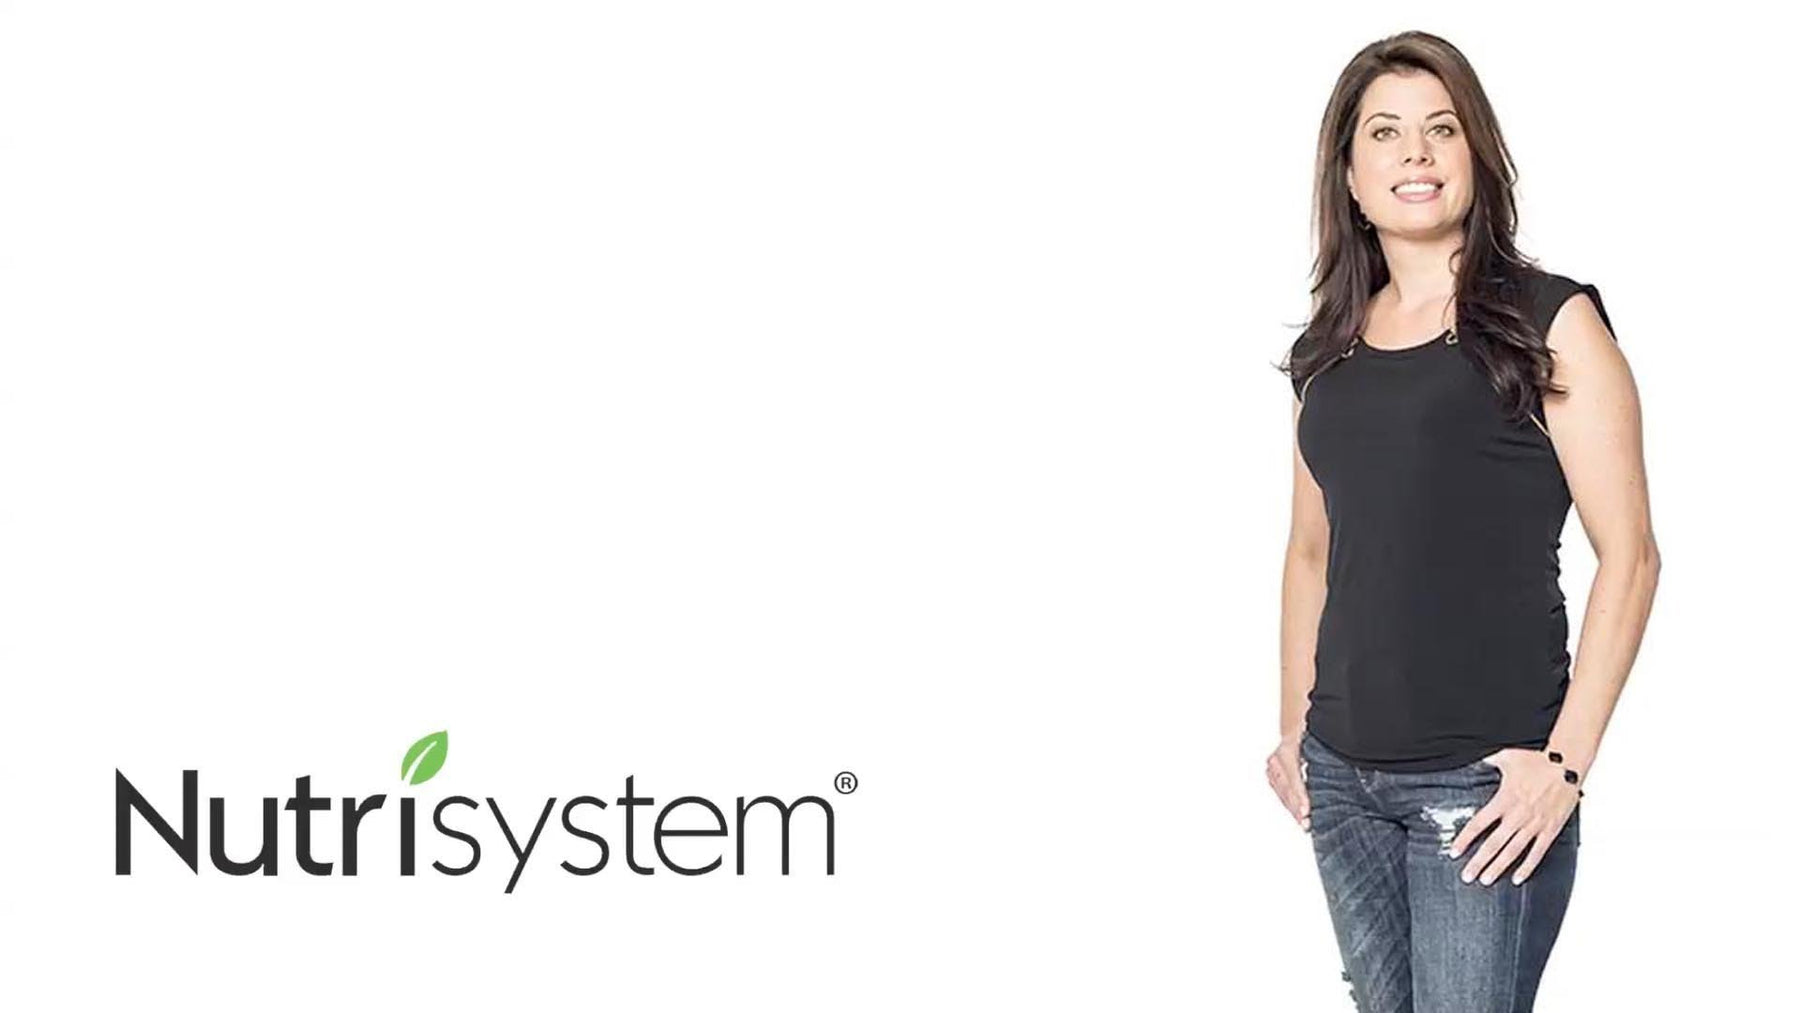 A New You: How the Nutrisystem Works